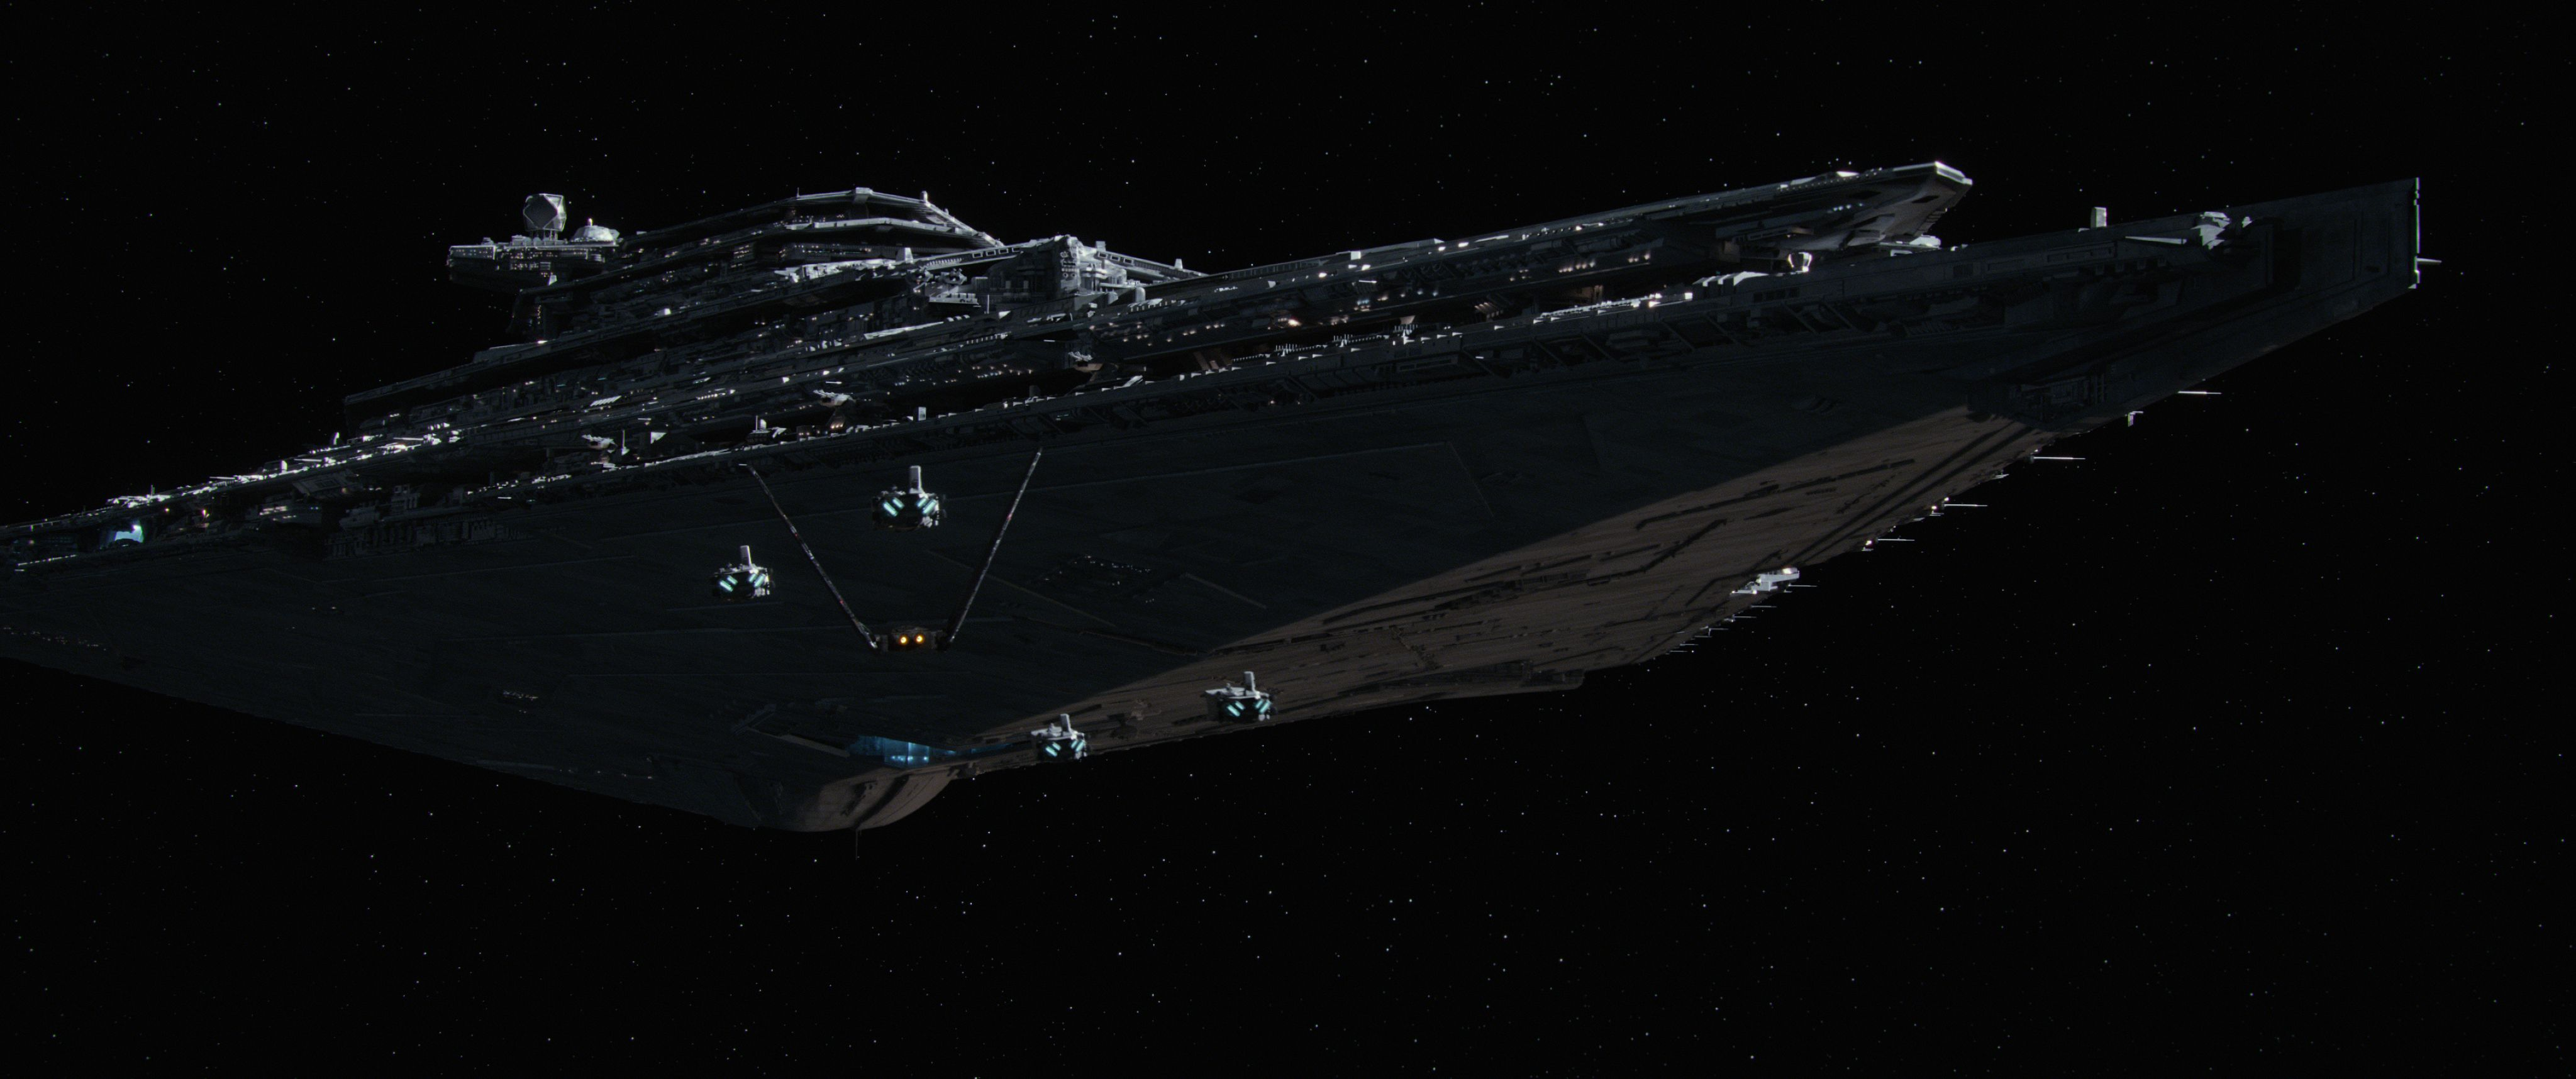 star wars 7 images reveal the main cast collider